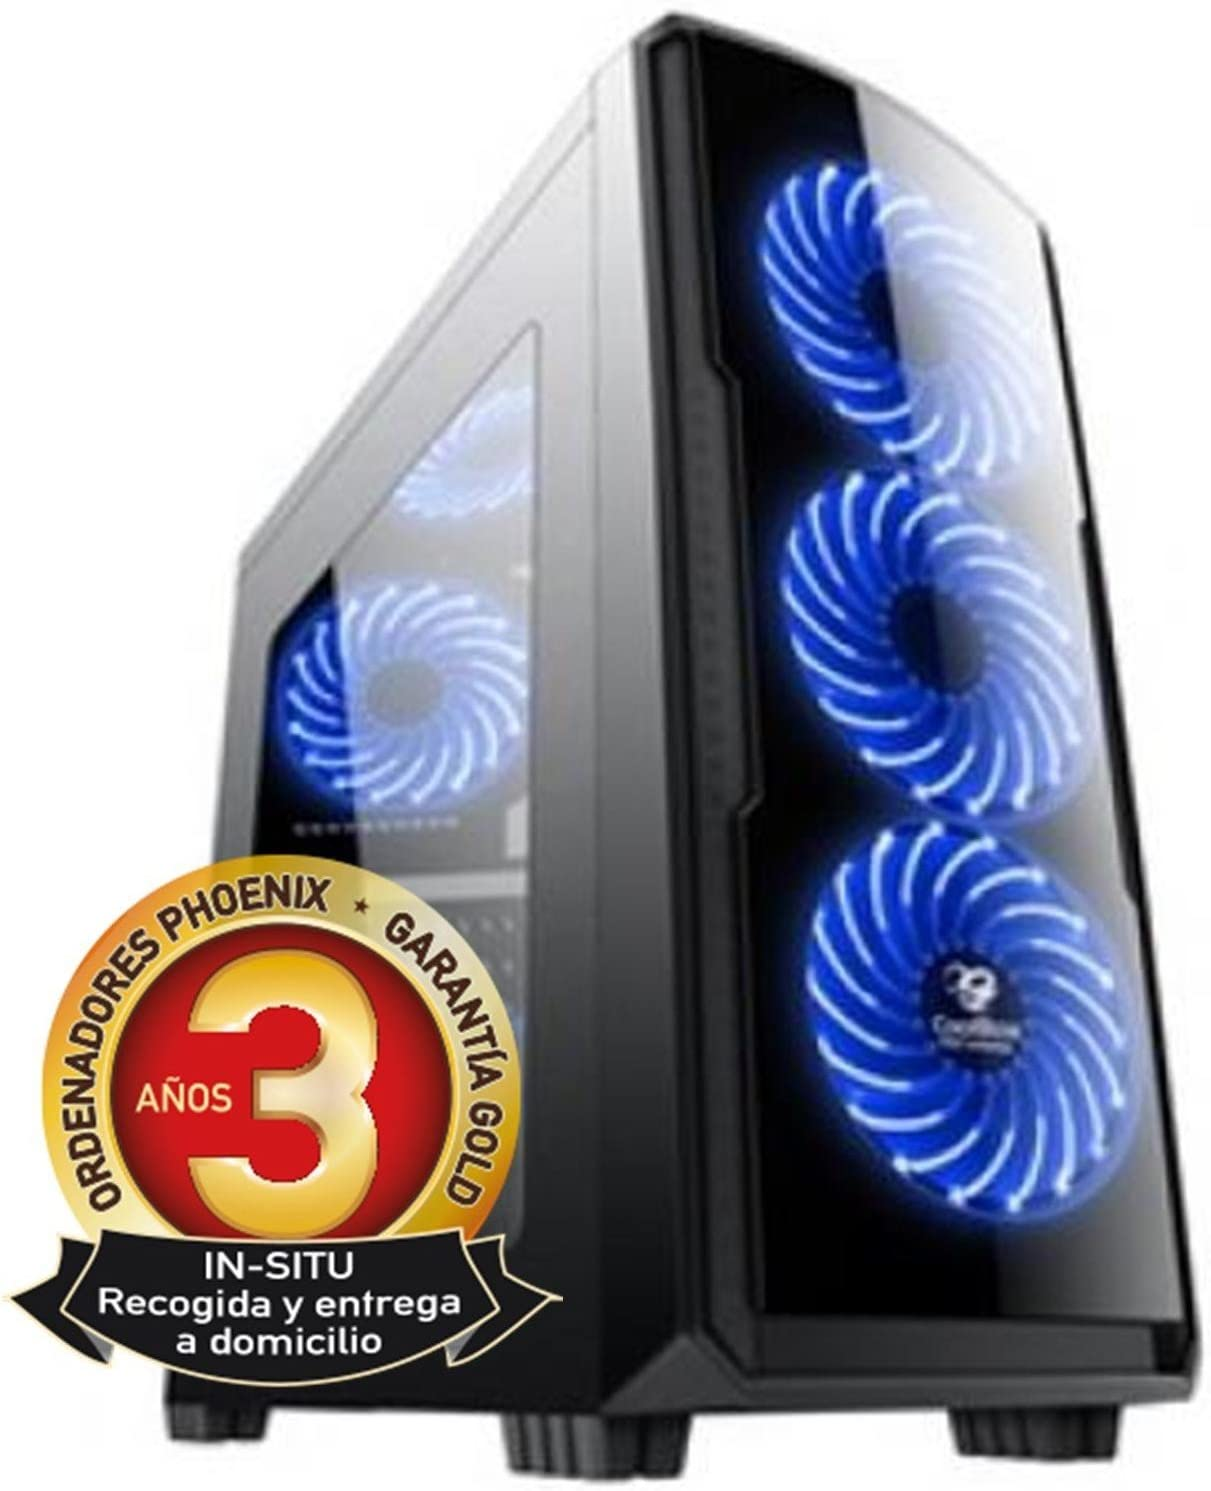 Phoenix Technologies Ordenador Phoenix Gaming Therion Intel Core